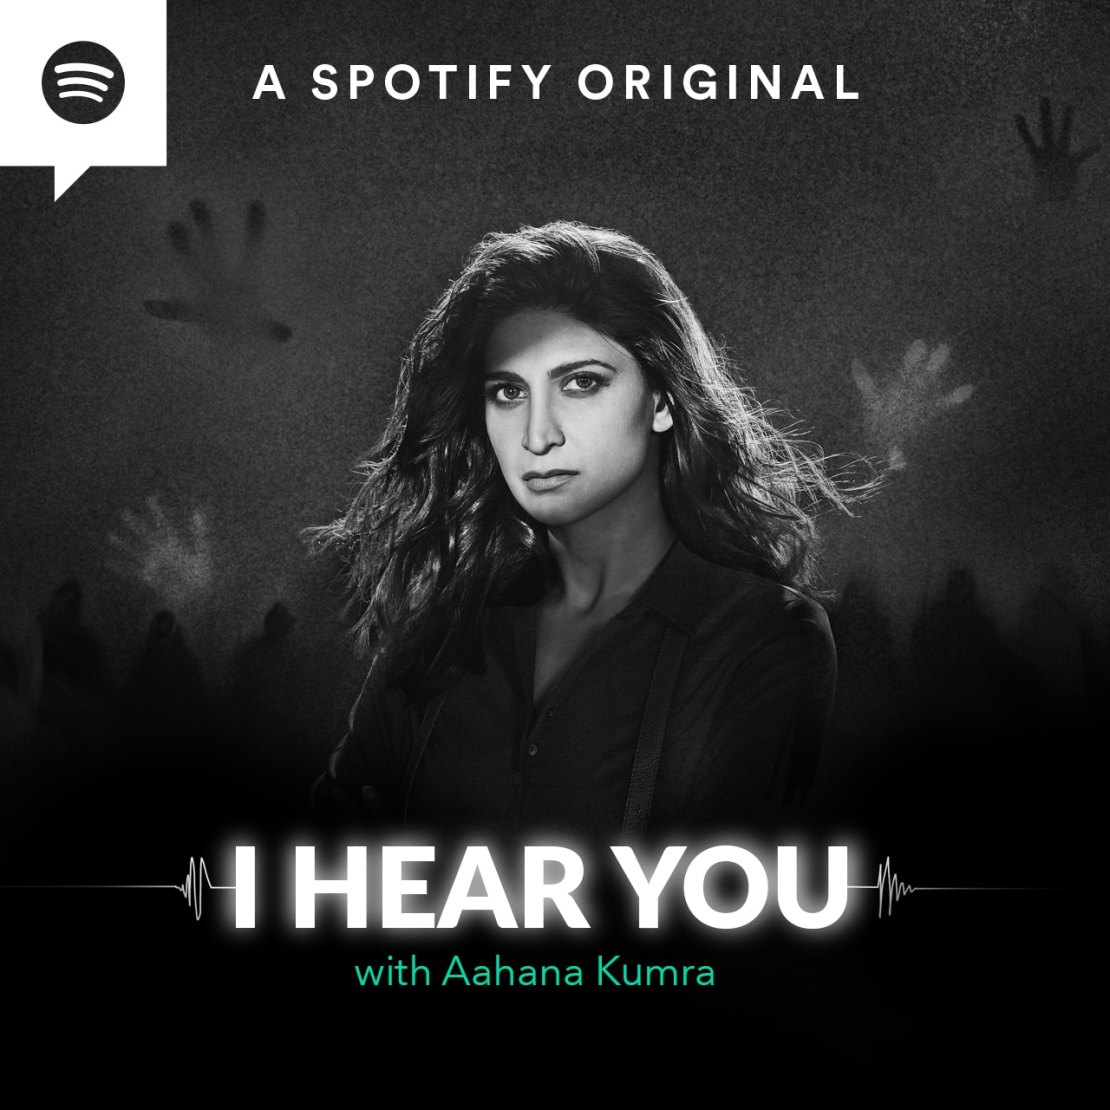 I Hear You features actor Aahana Kumra voicing detective Priyamvada, who can hear the thoughts of the dead.